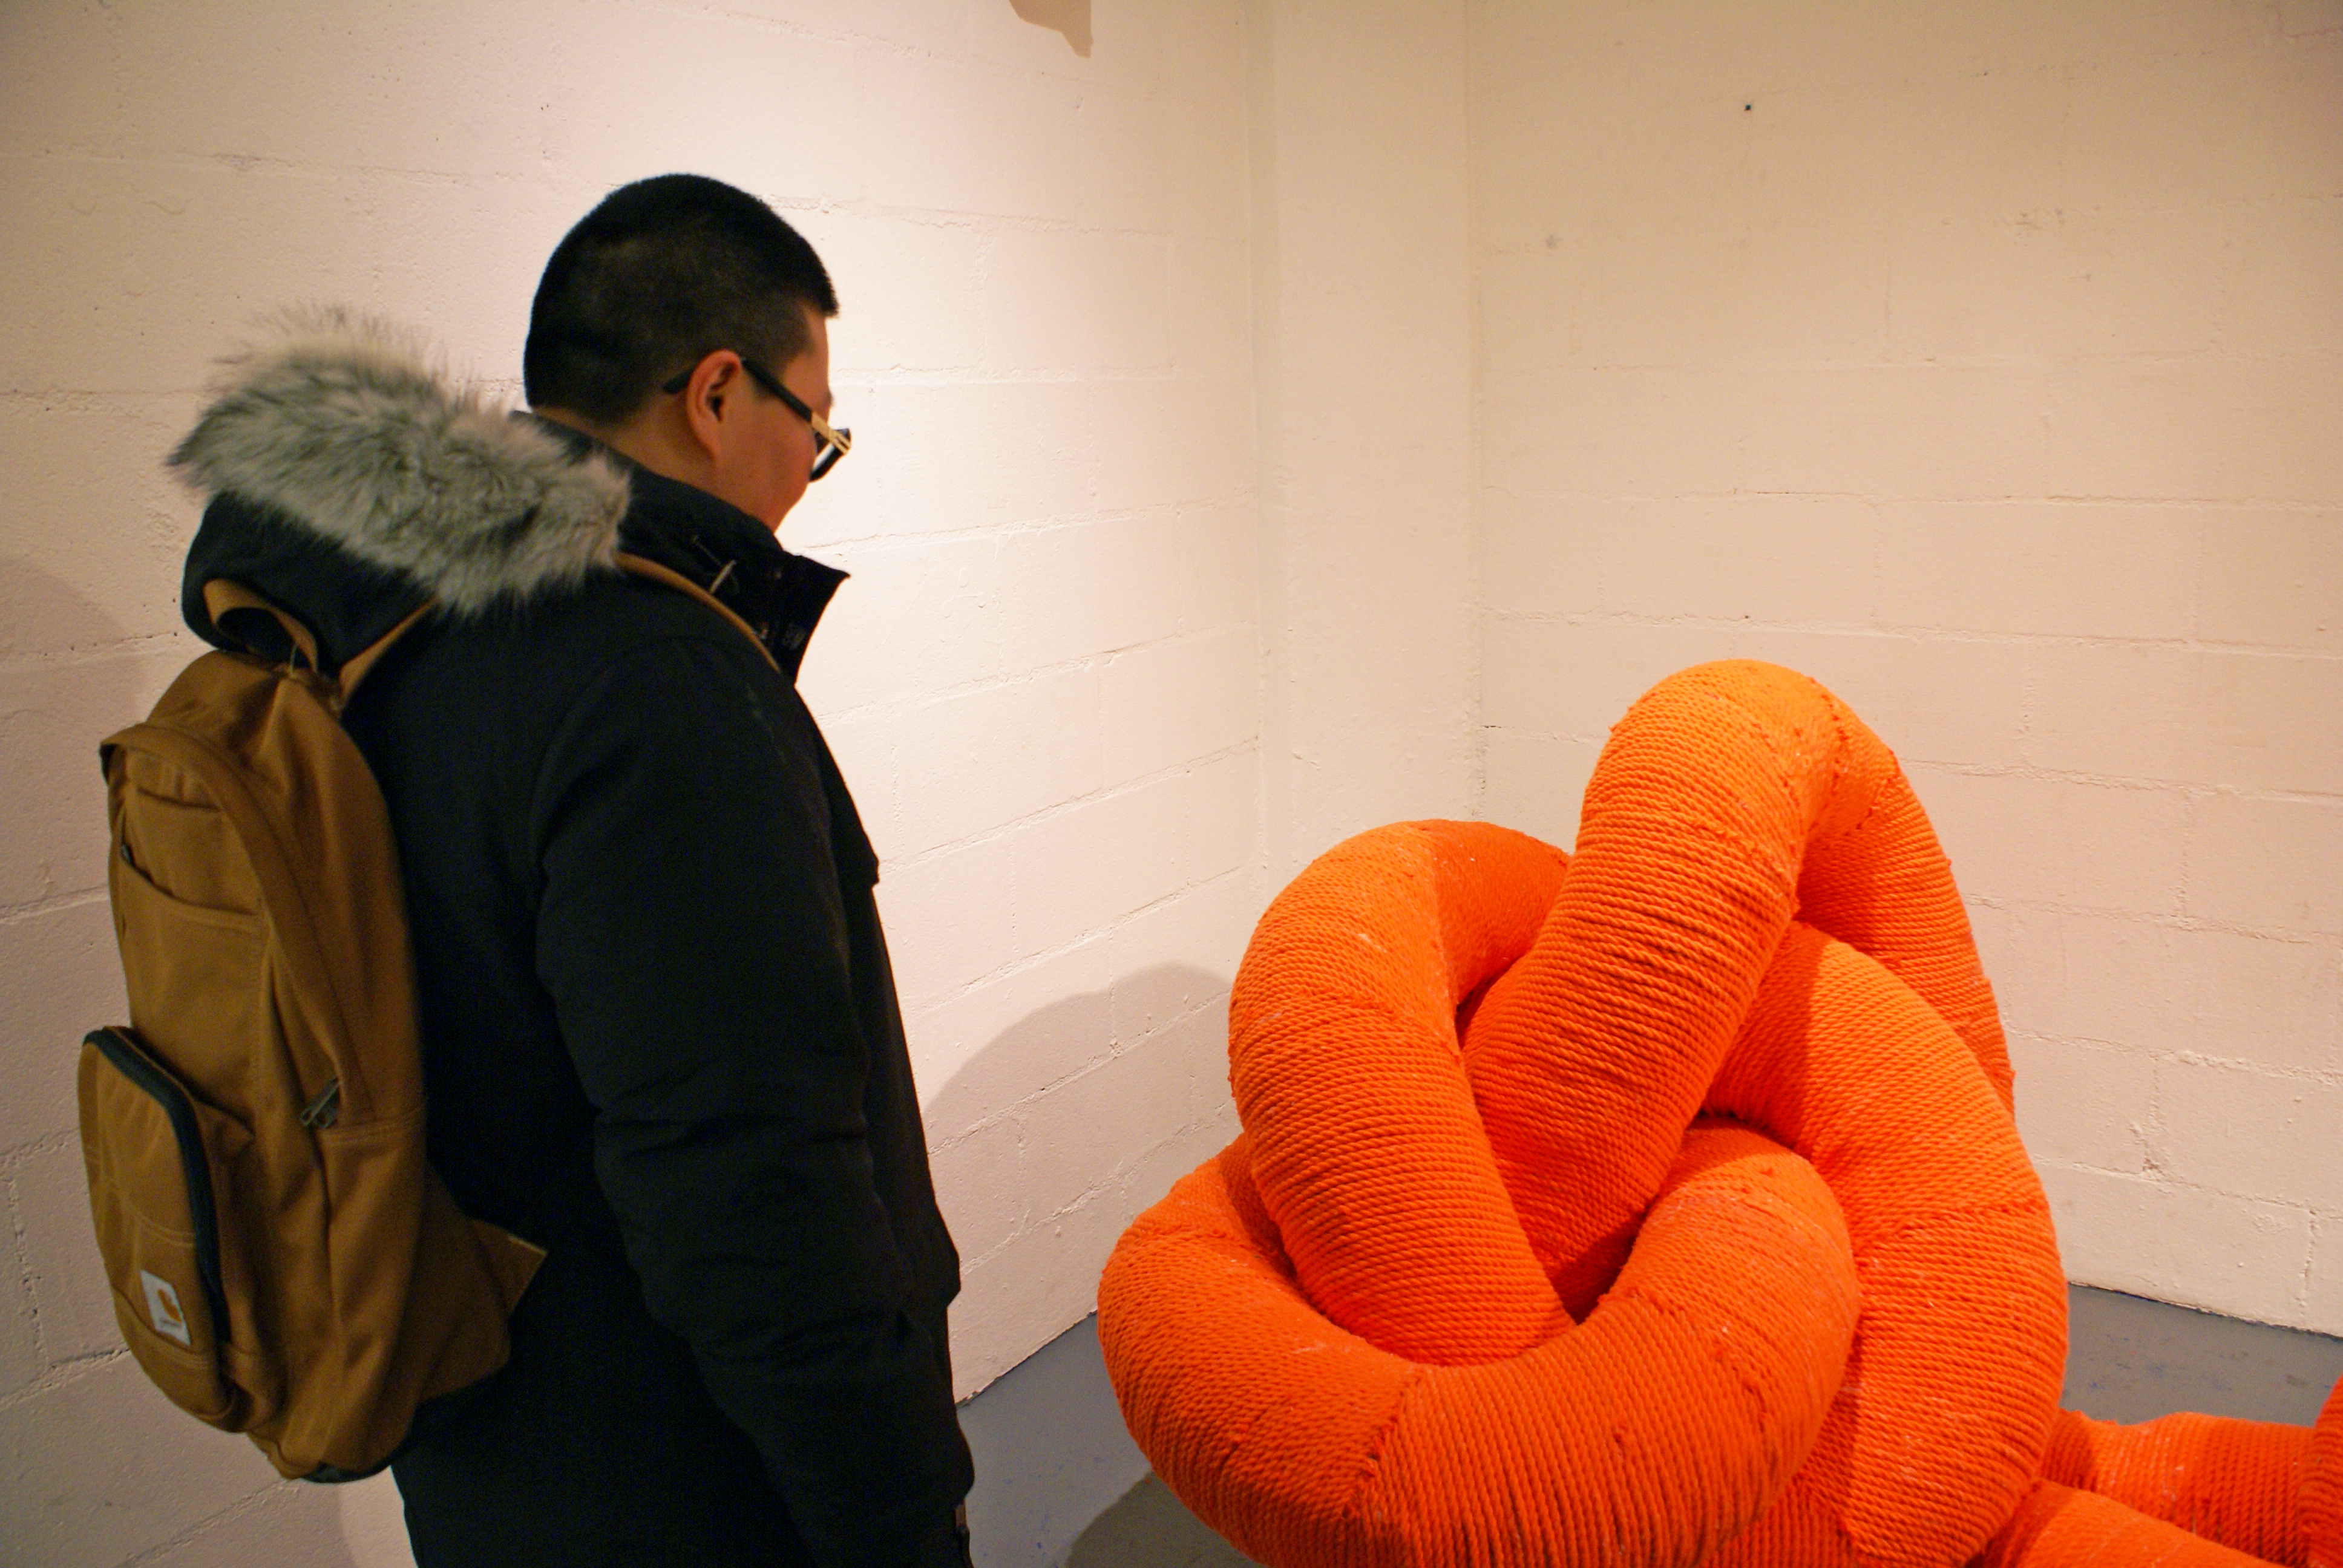 Woman looks at Whitney Oldenburg's sculpture titled Shoe Lace in the MFTA Gallery. The sculpture is made of intertwined ventilation tubing covered in bright orange yarn-like cord.